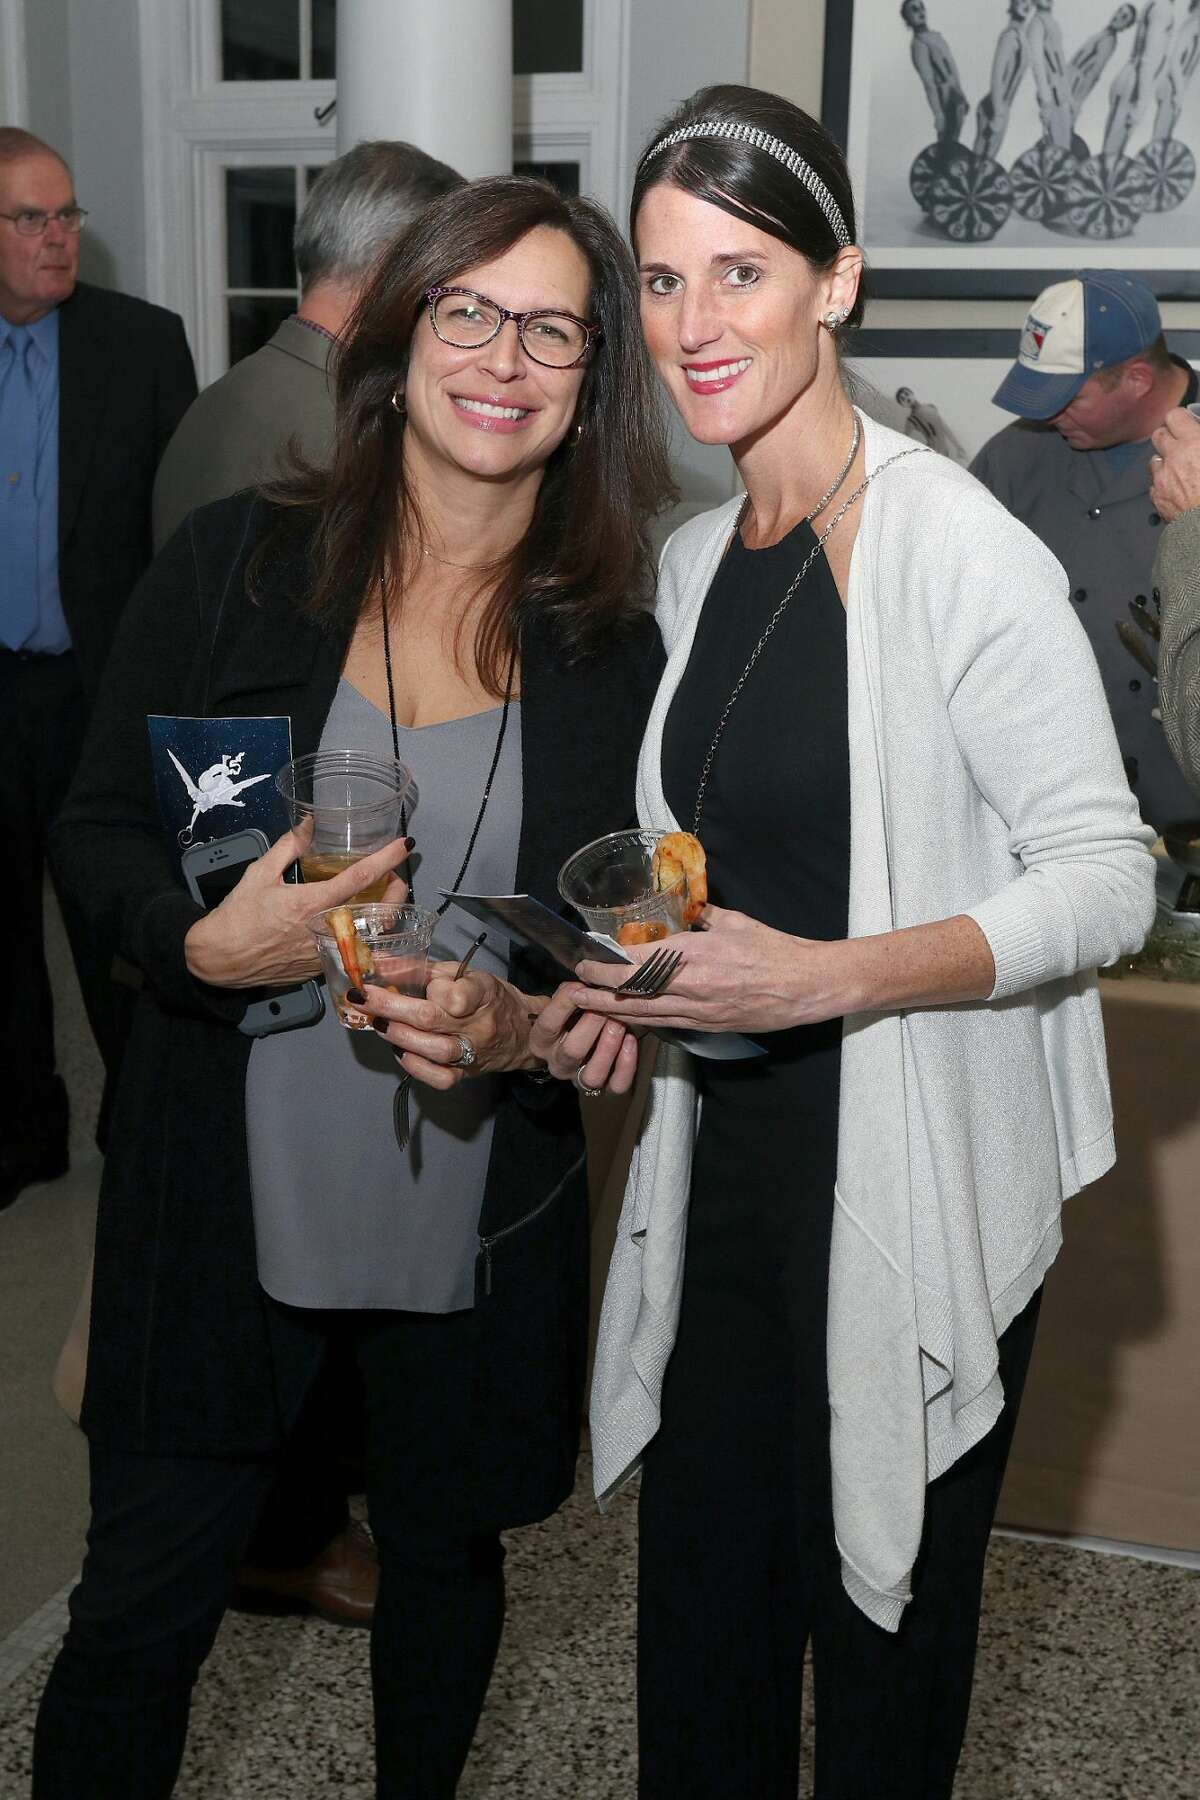 Were you Seen at TheTwenty-Third Annual Touched by an Angel to benefit The Community Hospiceat the National Museum of Dance inSaratoga Springson Thursday, Oct. 18, 2018?